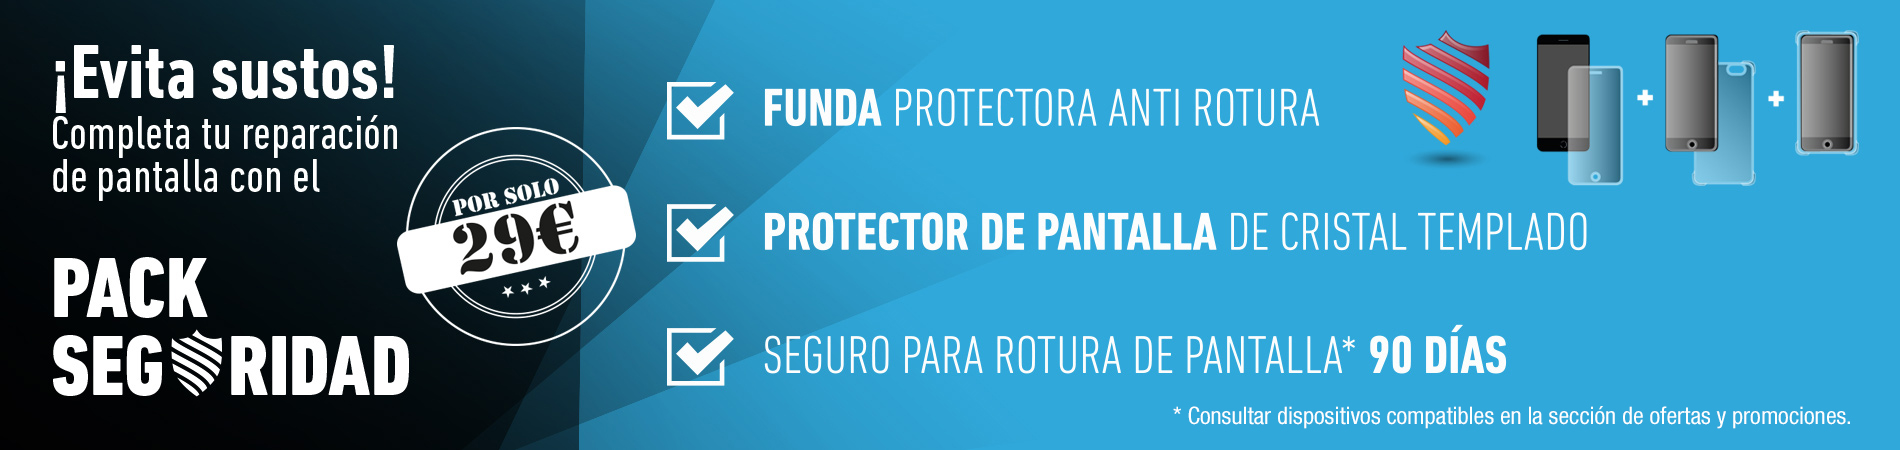 pack de seguridad anti rotura de pantalla